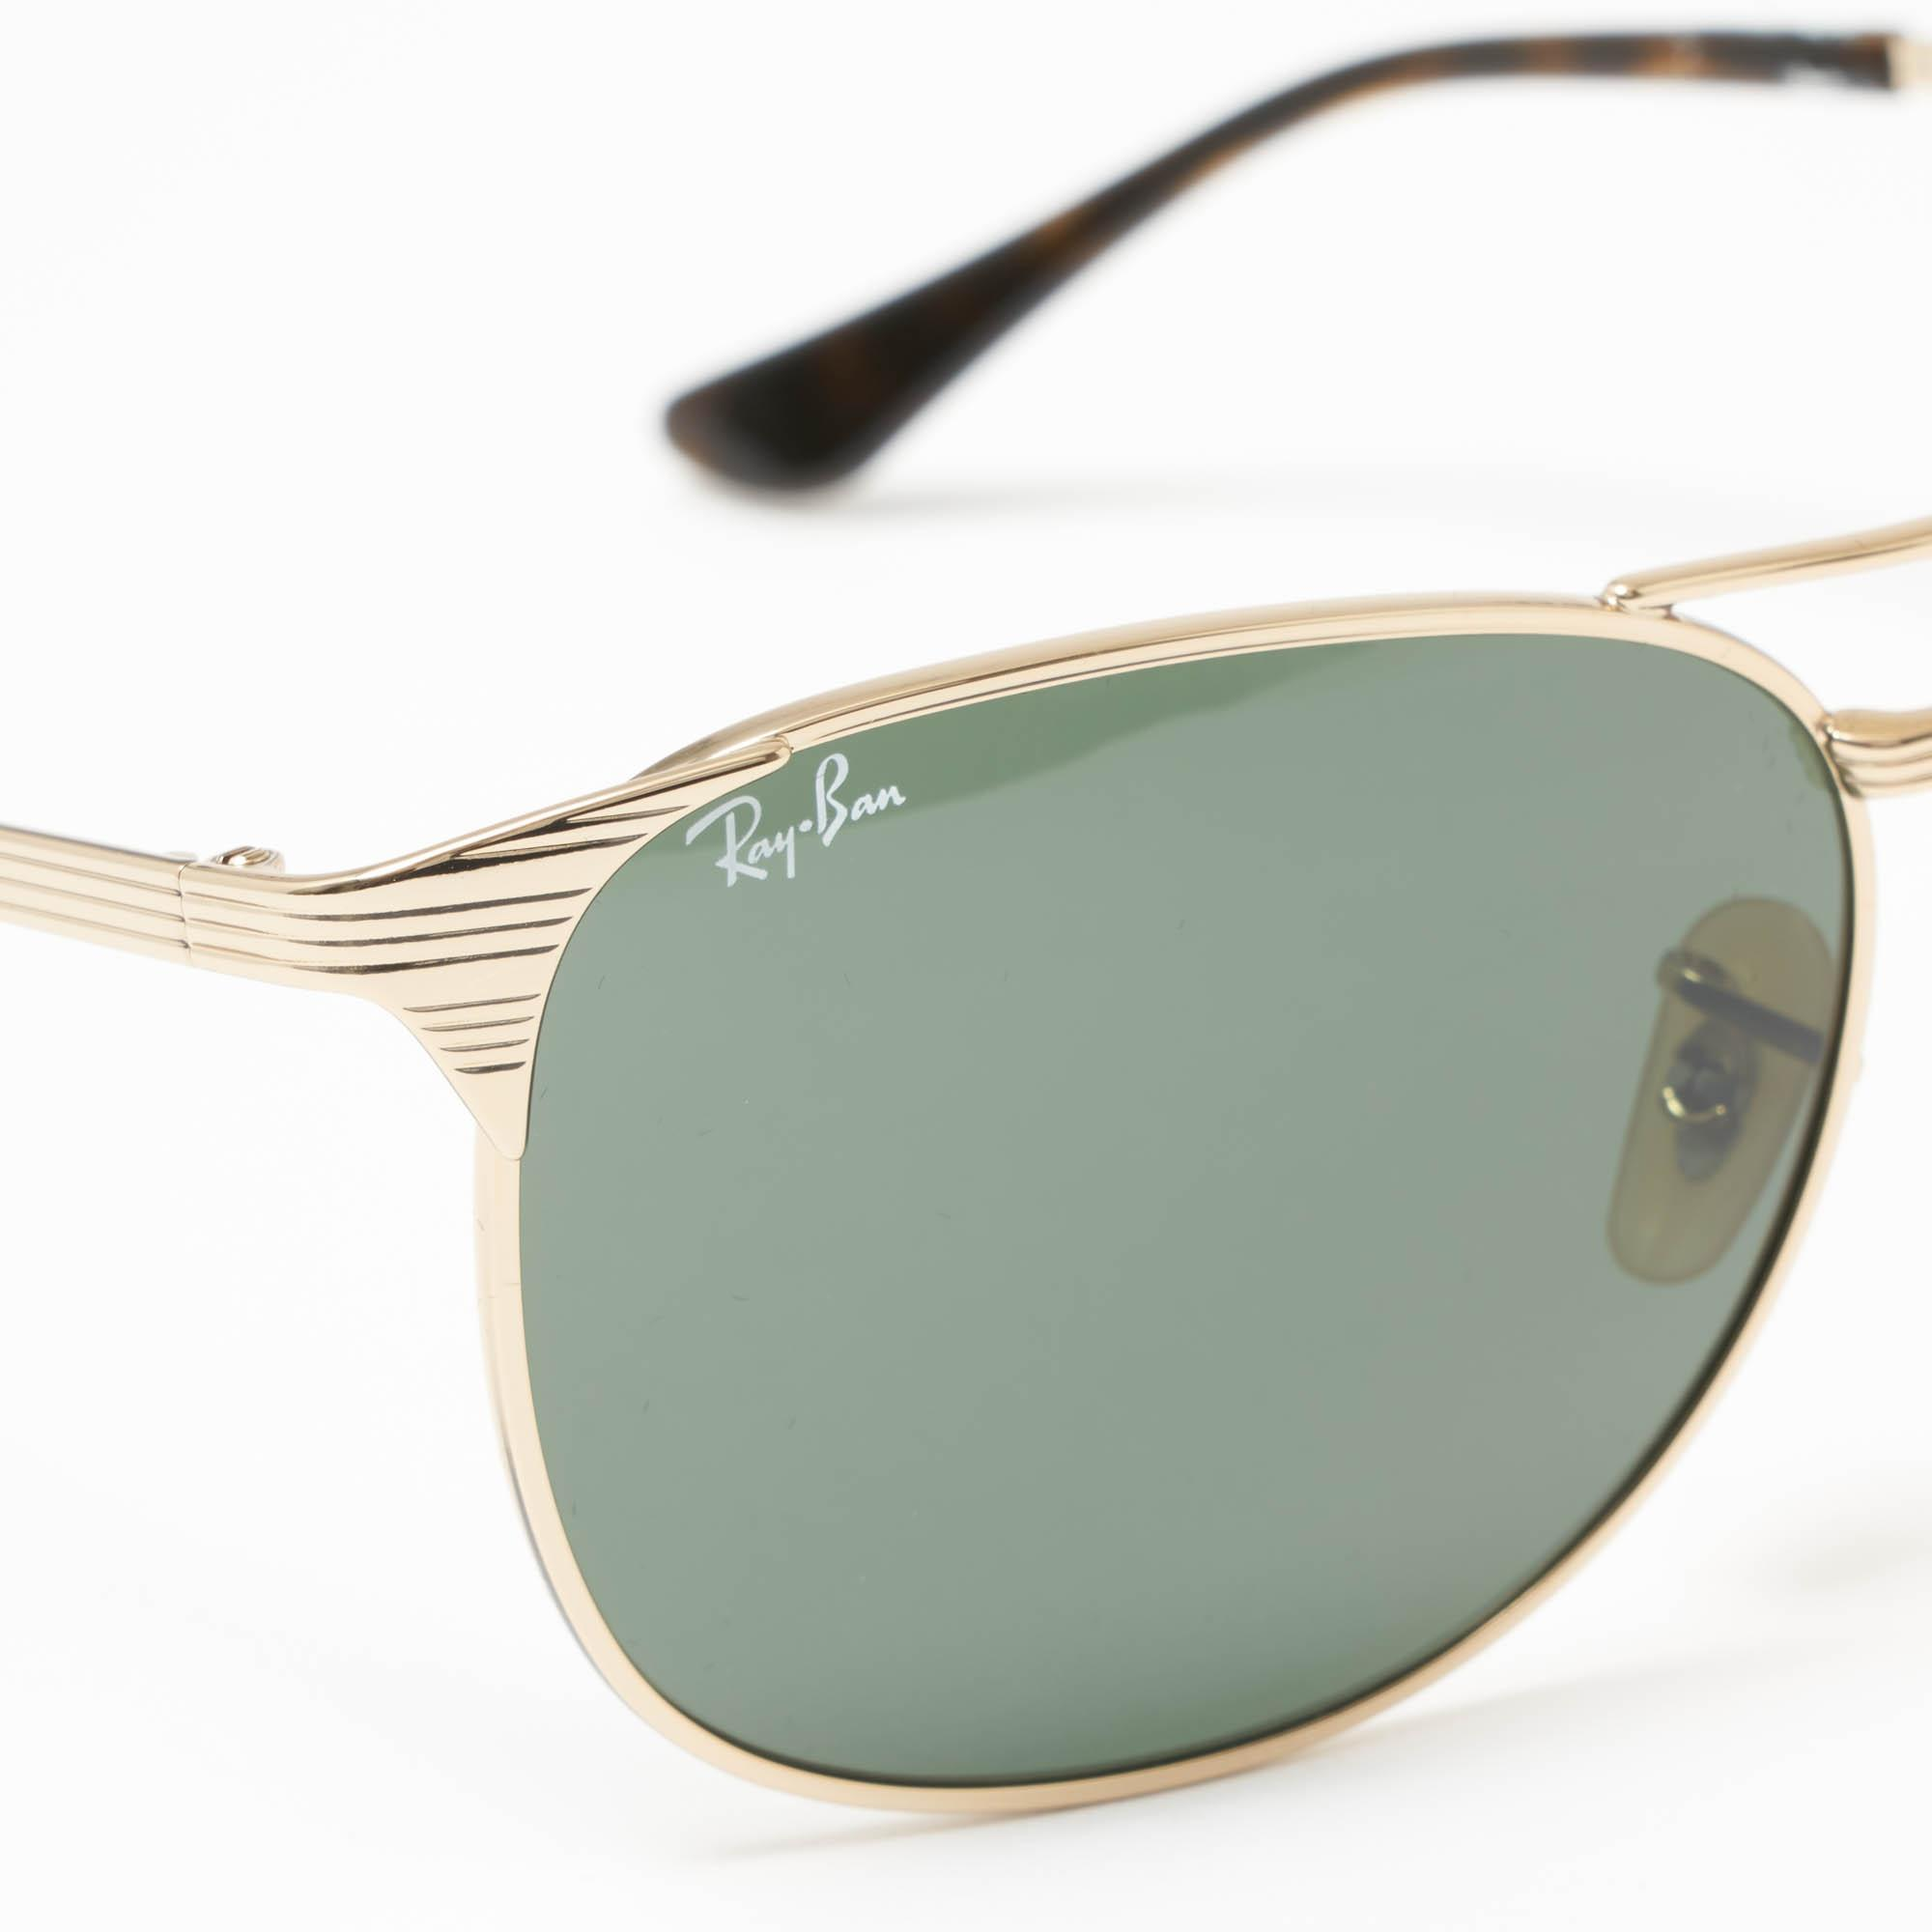 ee8d802b49 Ray-Ban - Signet Sunglasses - Green Classic G-15 Lenses for Men -. View  fullscreen